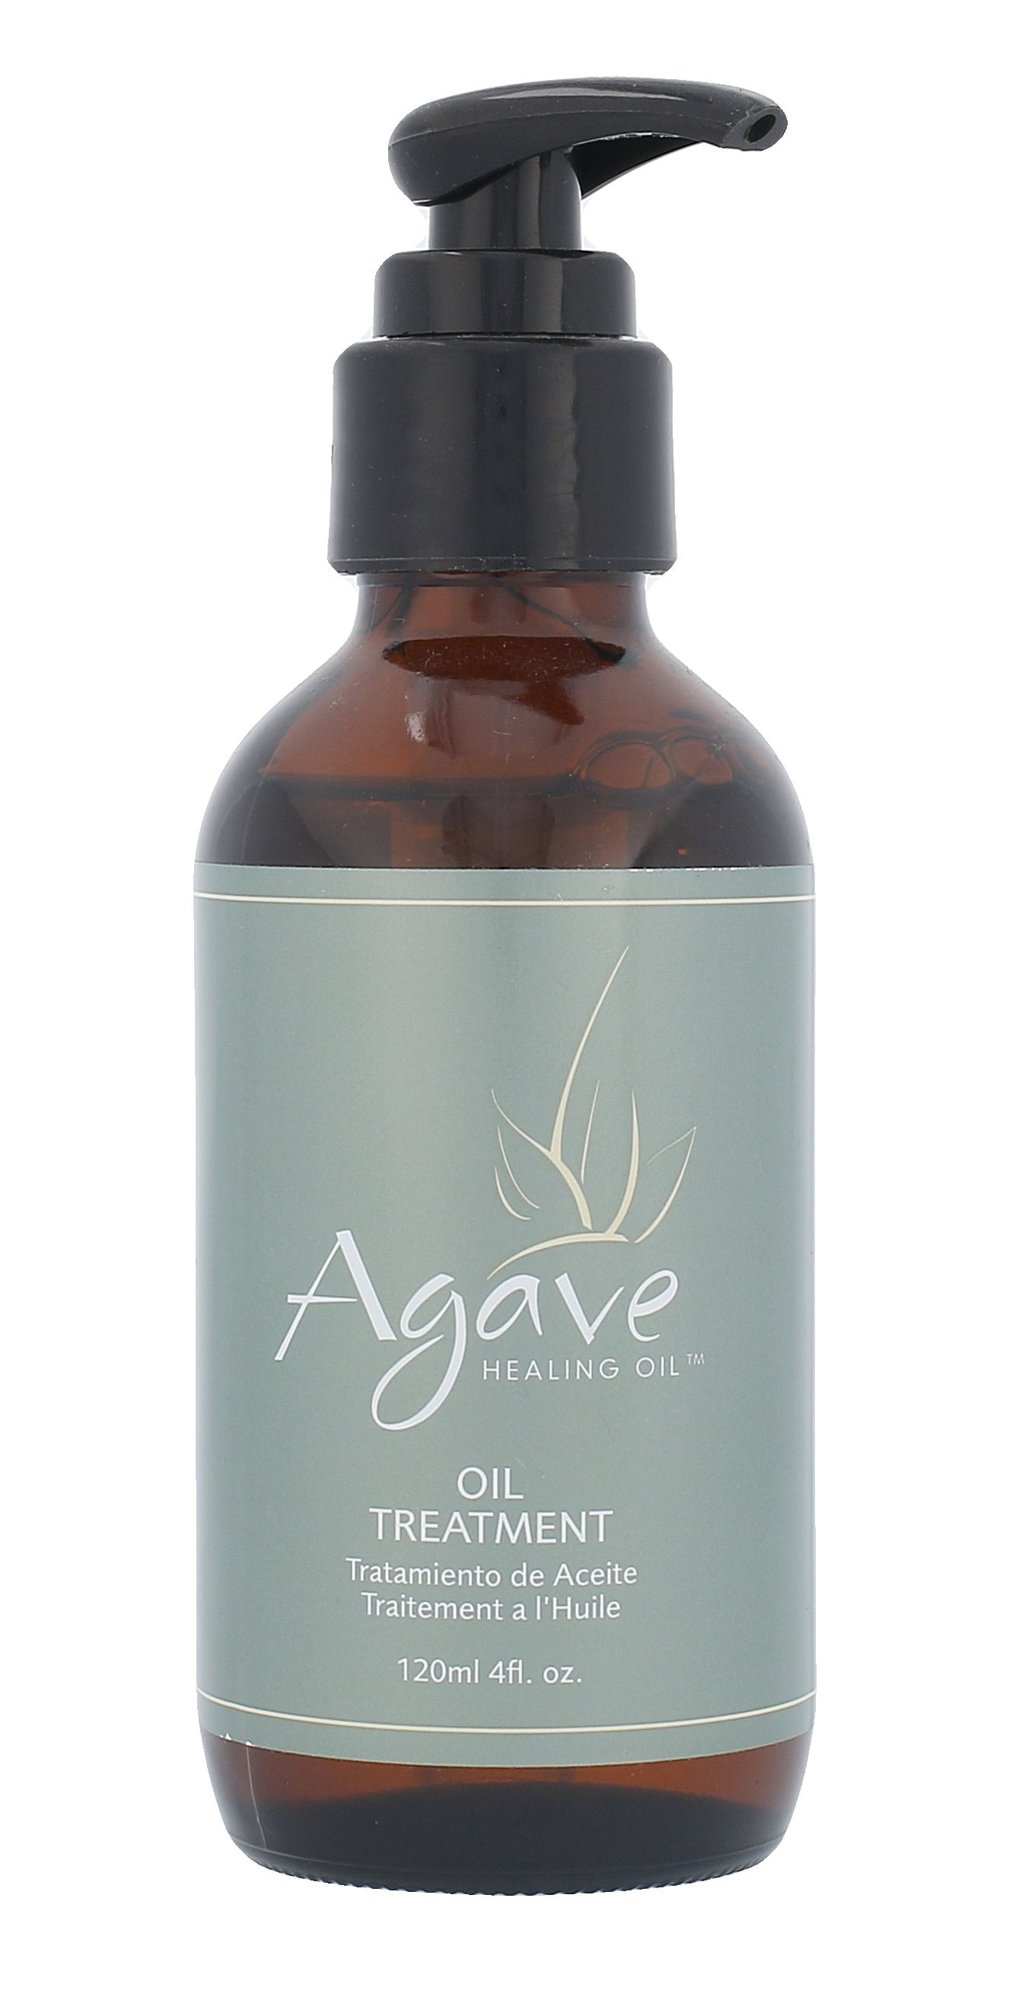 Bio Ionic Agave Oil Treatment Cosmetic 120ml